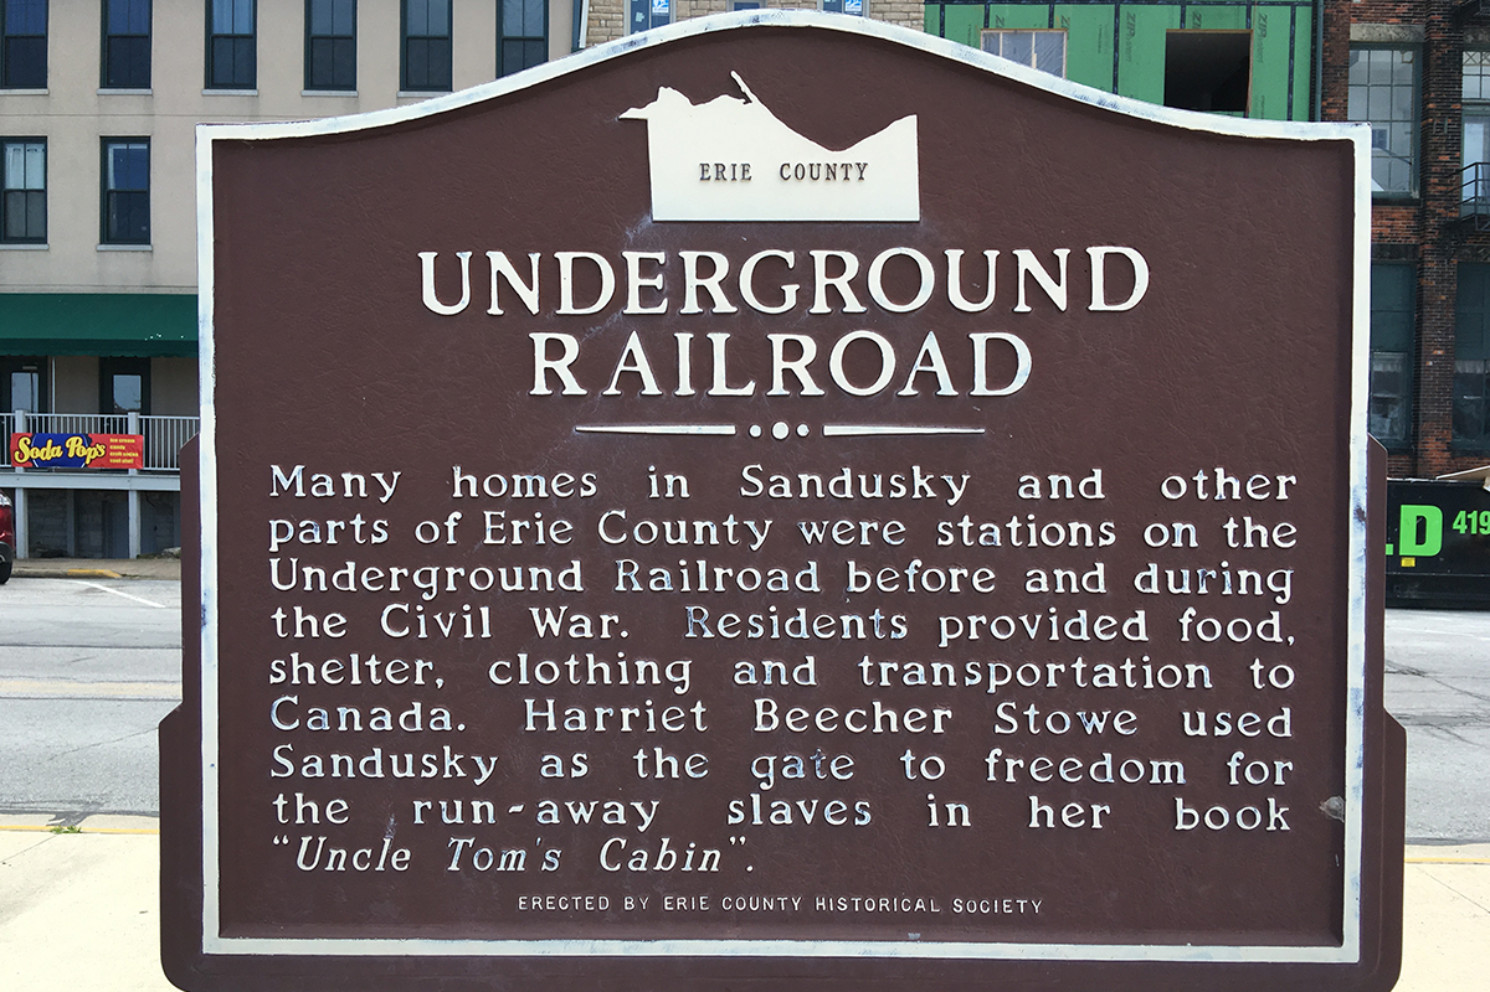 Underground Railroad Marker - Erie County Ohio Historical Society